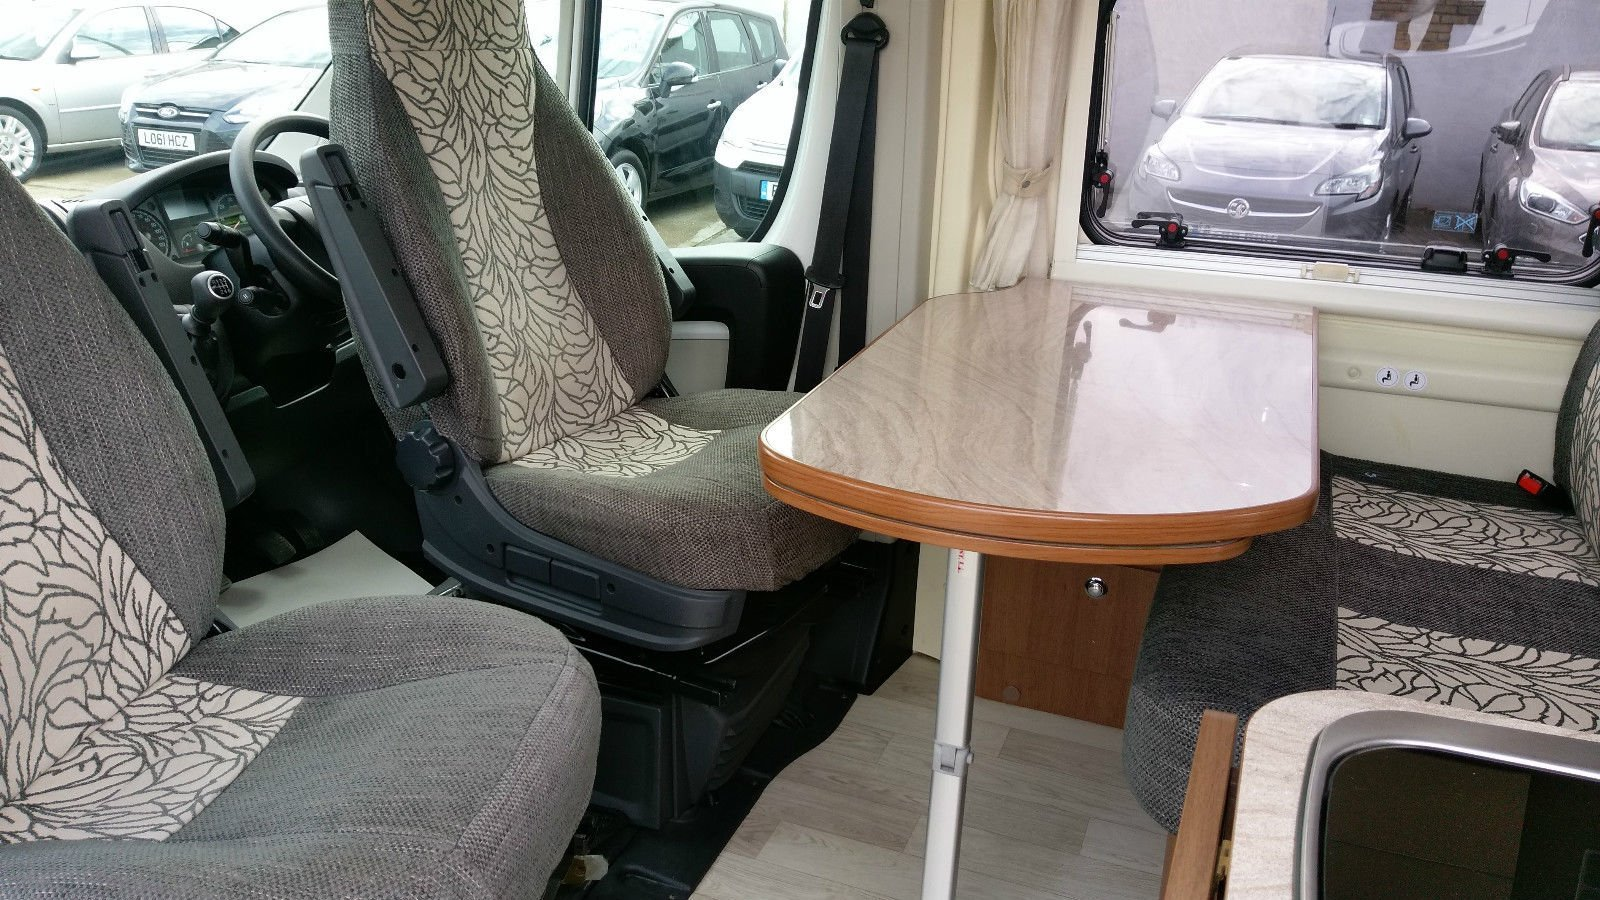 Auto-trail Tribute used motorhome camper van for sale at Wests Motorhome Hire UK